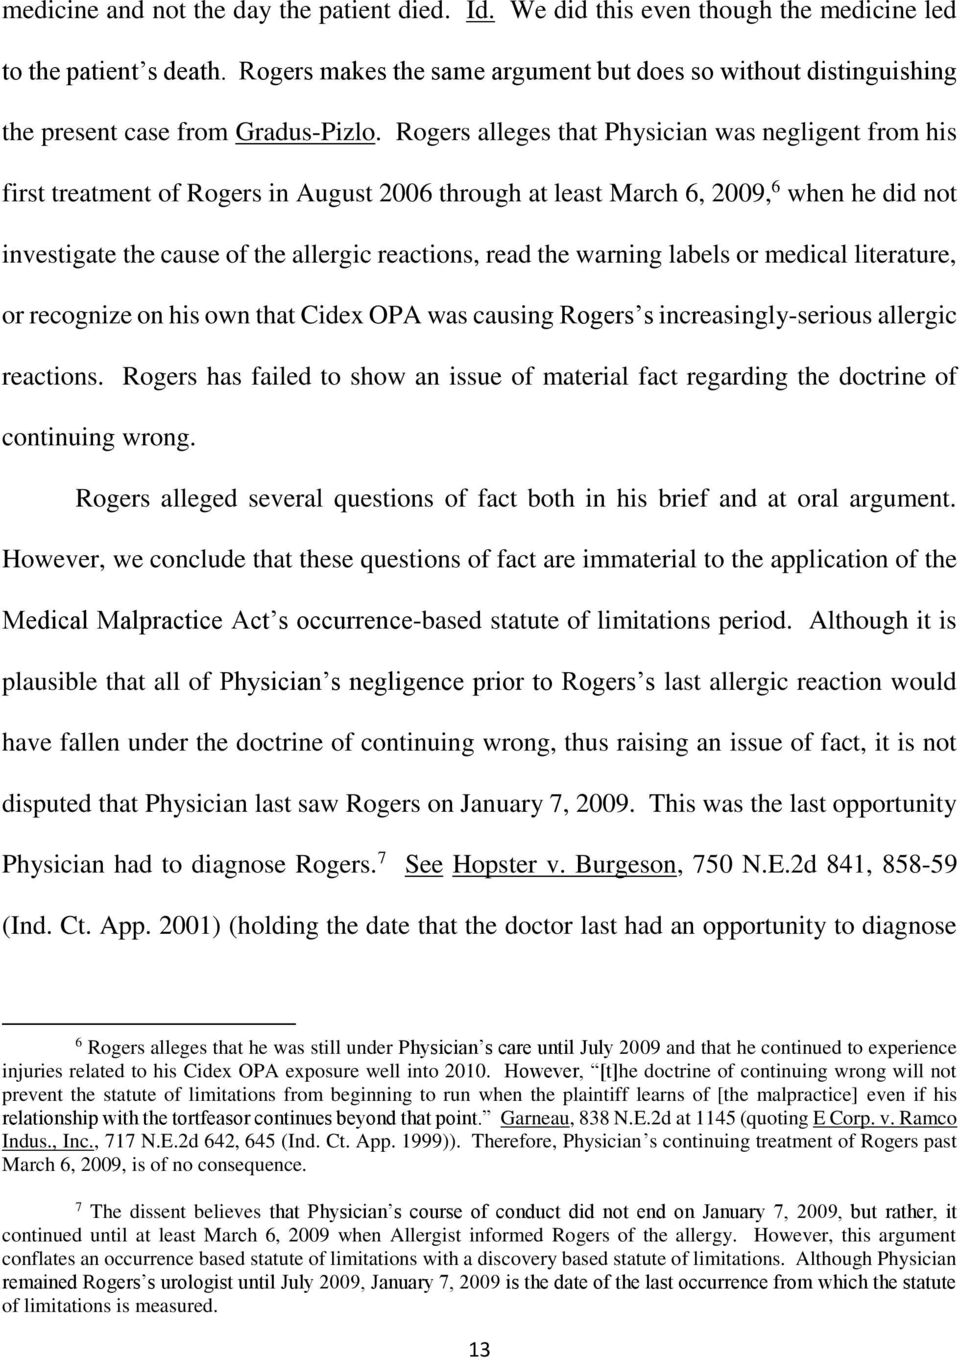 Rogers alleges that Physician was negligent from his first treatment of Rogers in August 2006 through at least March 6, 2009, 6 when he did not investigate the cause of the allergic reactions, read